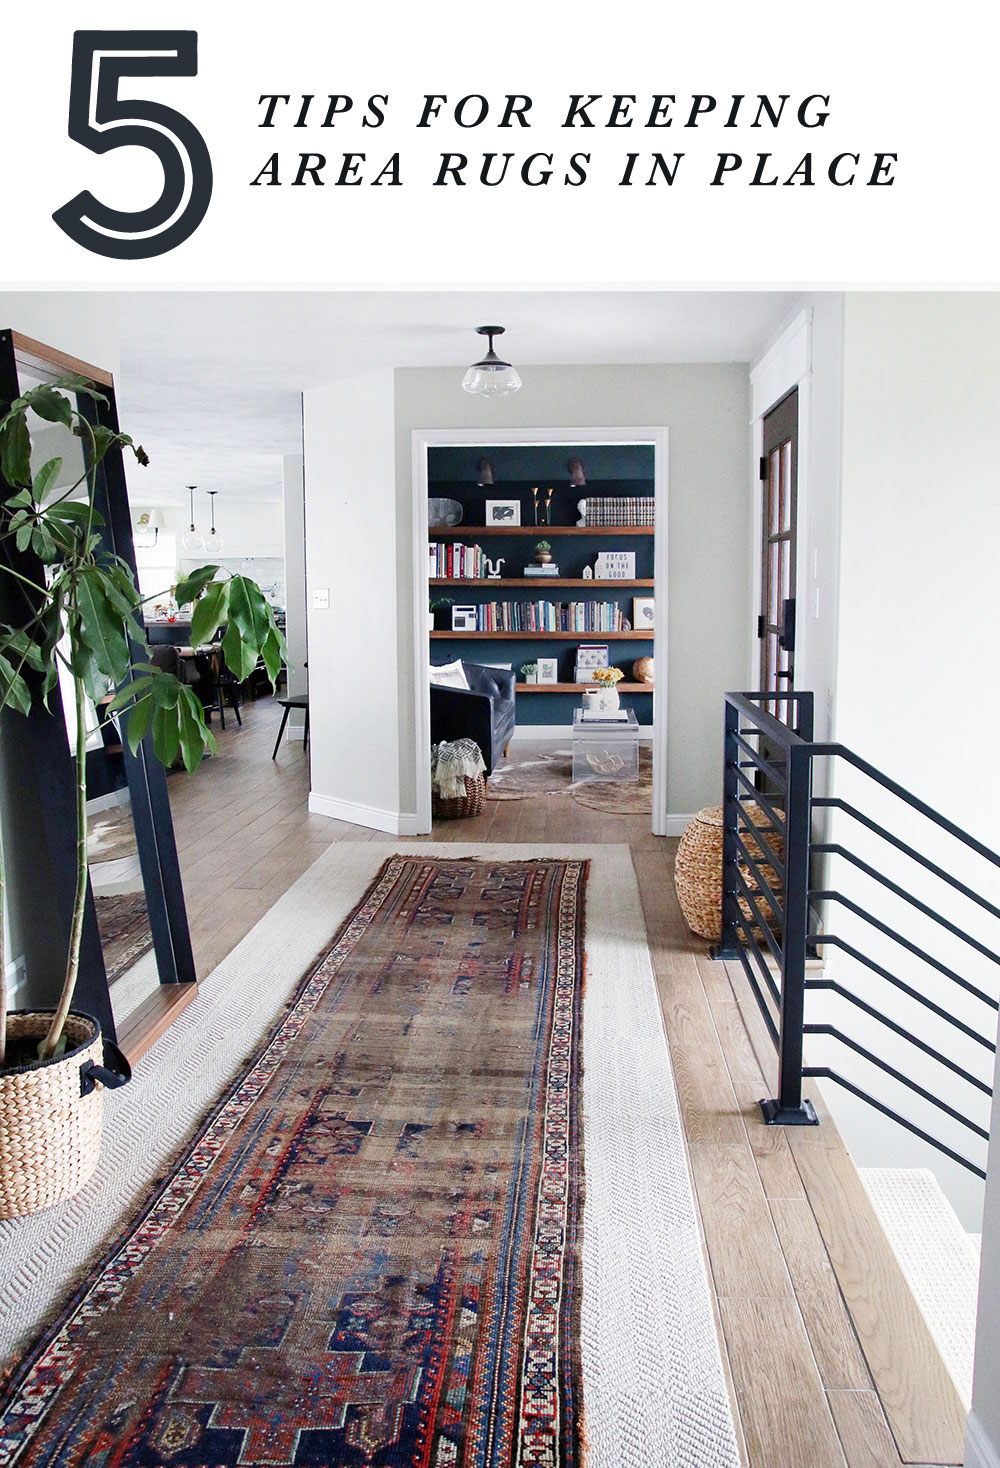 5 Tips For Keeping Area Rugs Exactly Where You Want Them Chris